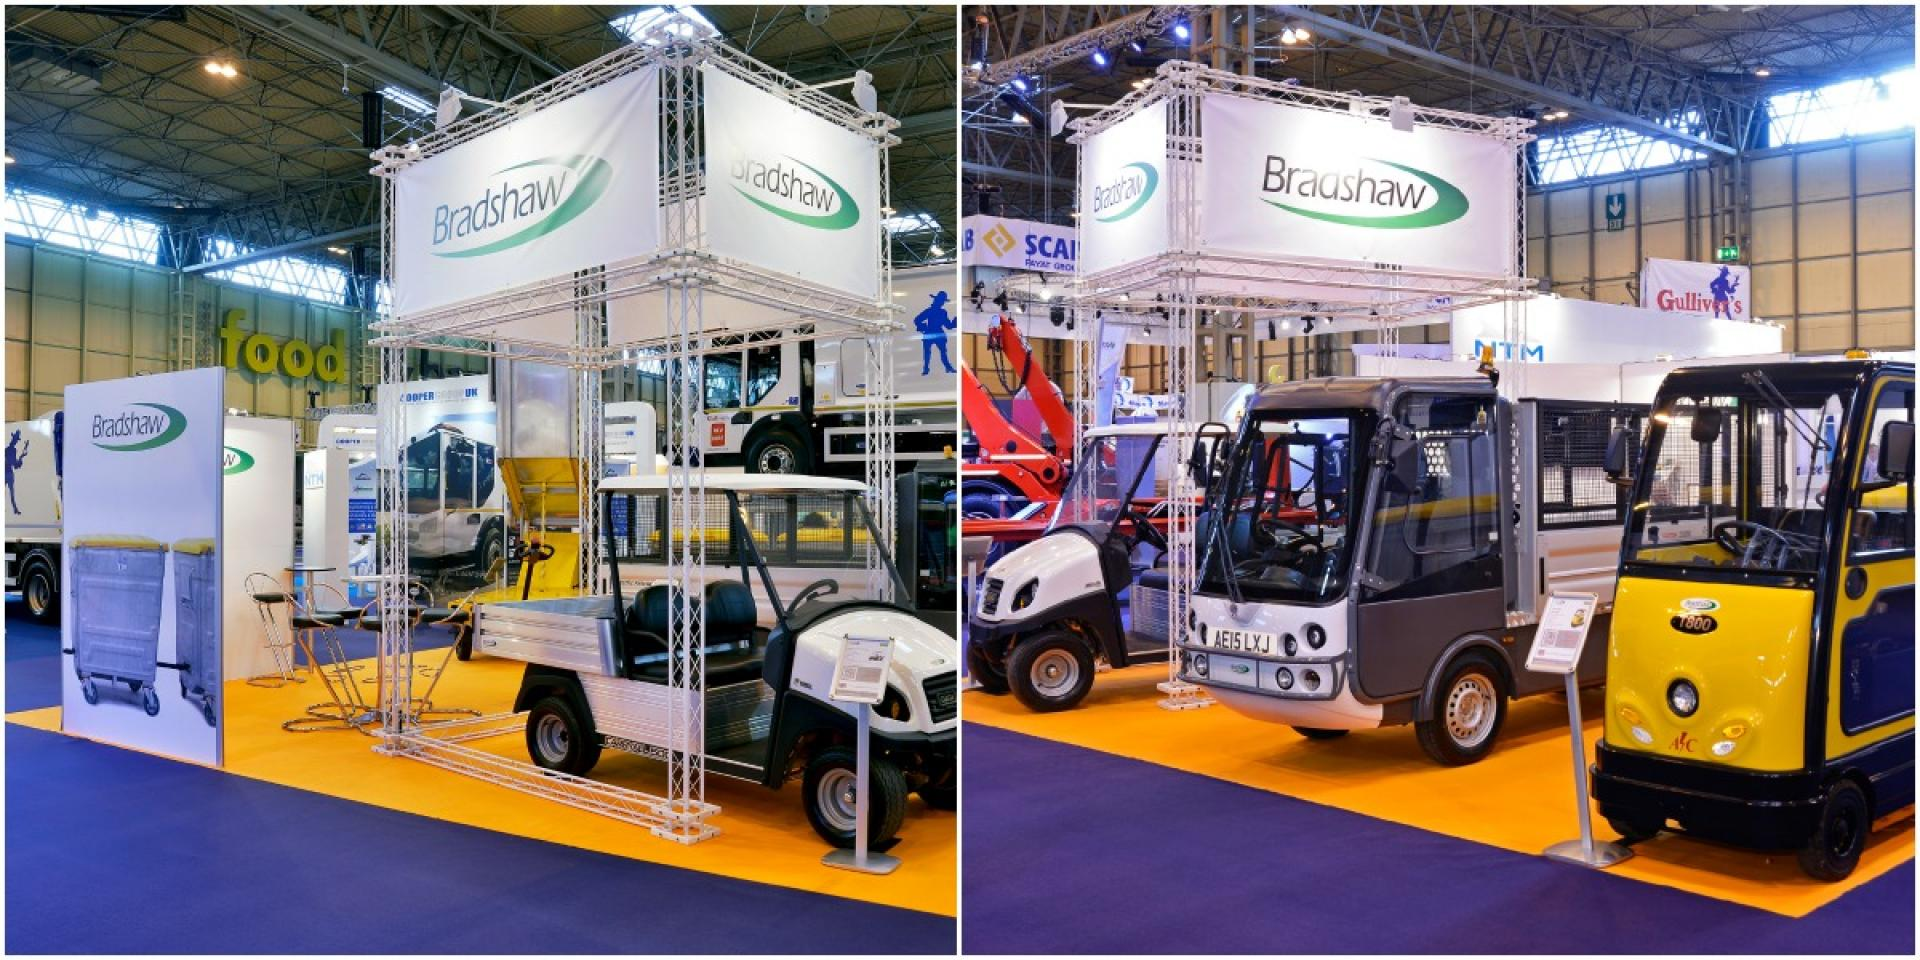 Bradshaws Custom Exhibition Stand